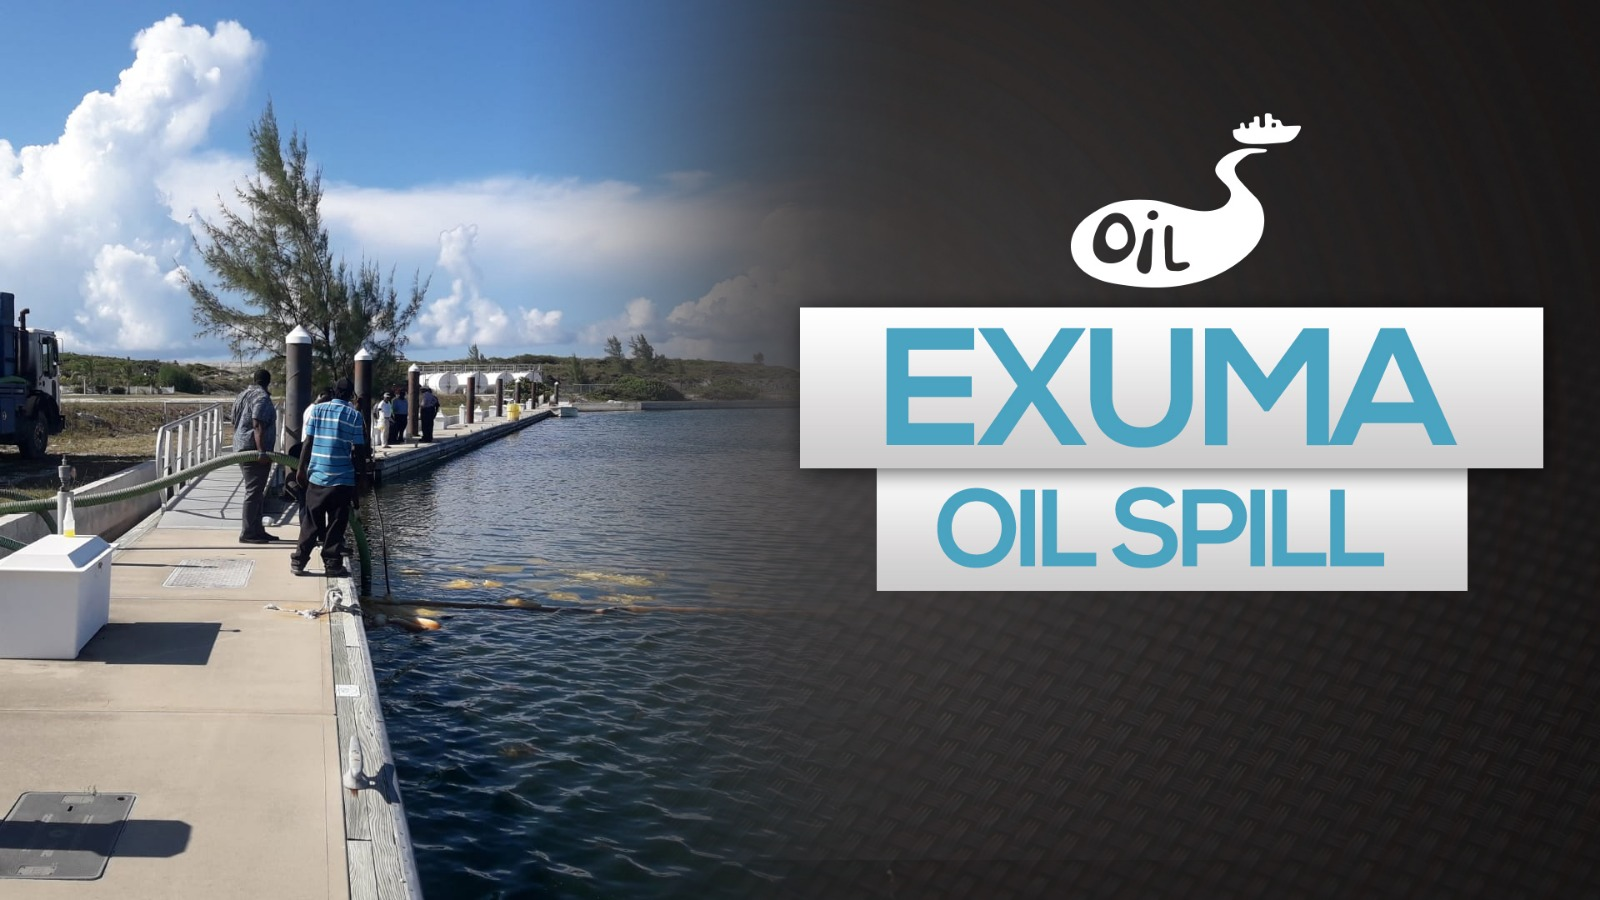 Pipeline leak leads to Exuma oil spill, Shell says